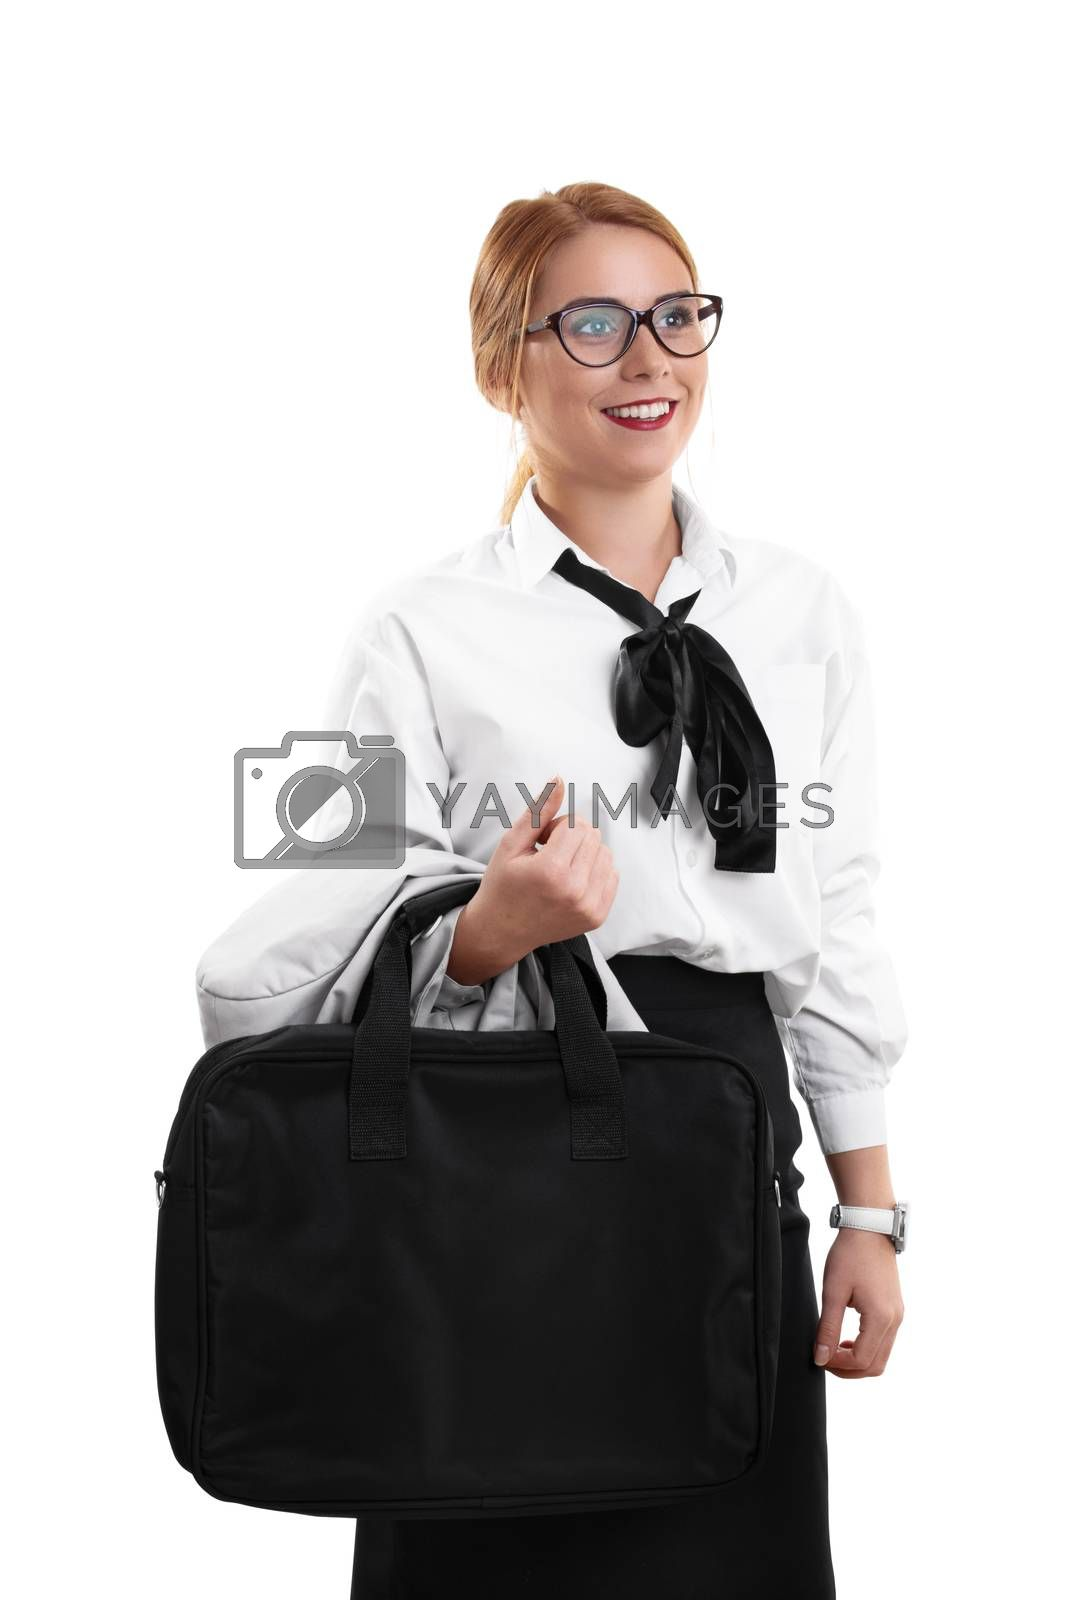 Modern business woman on her way to a meeting by Mendelex